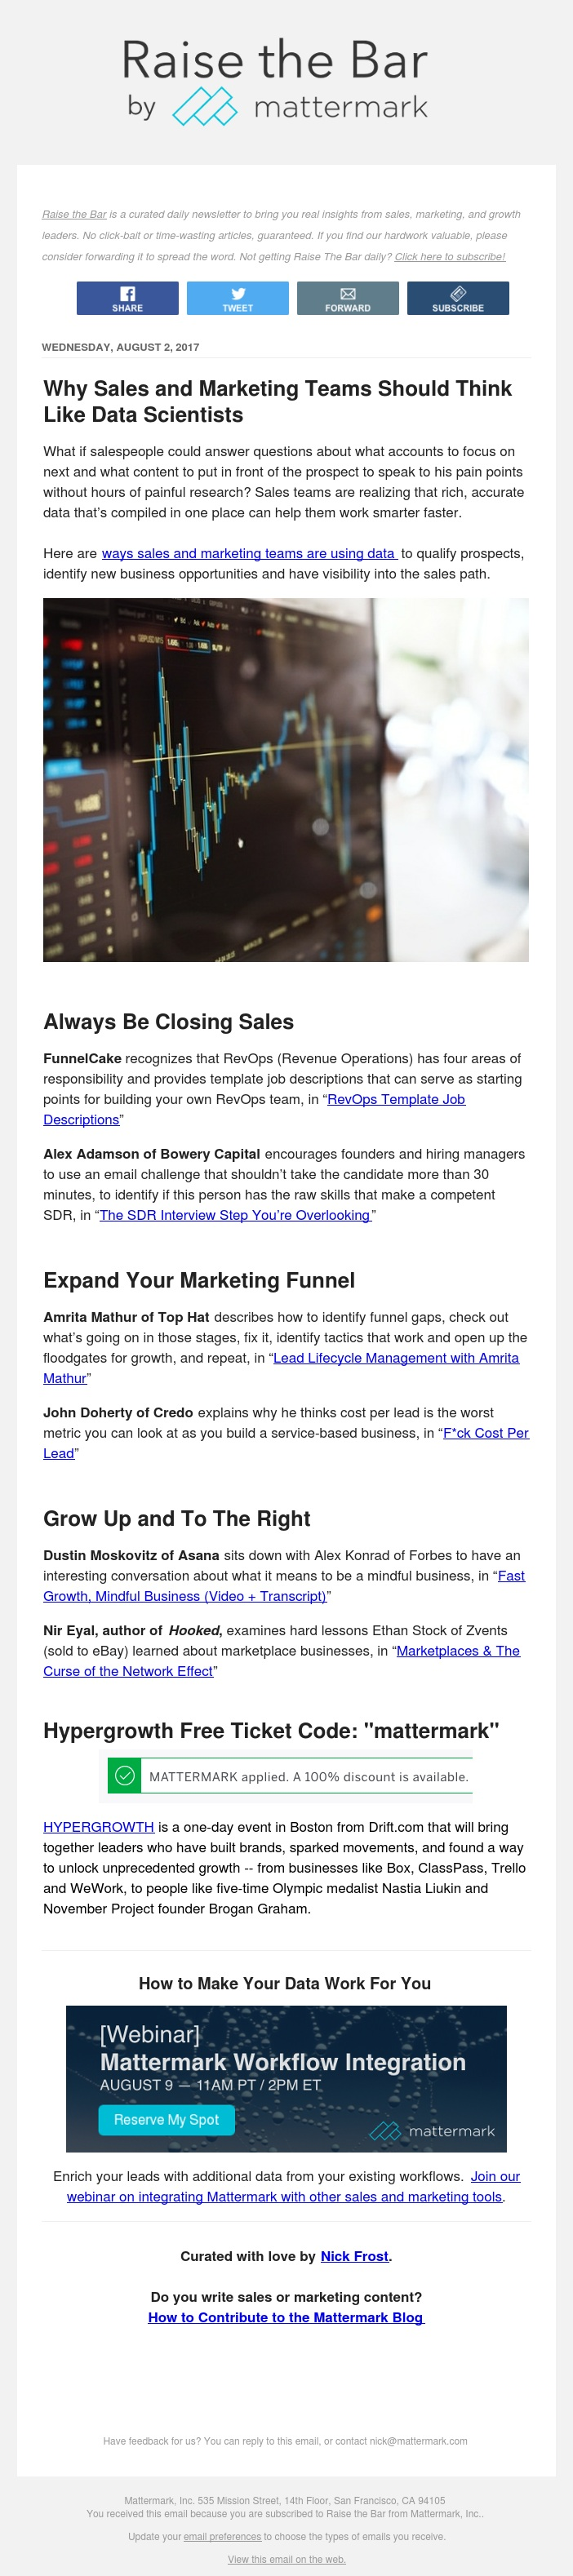 Raise The Bar - F*ck Cost Per Lead, Fast Growth, Mindful Business, and More